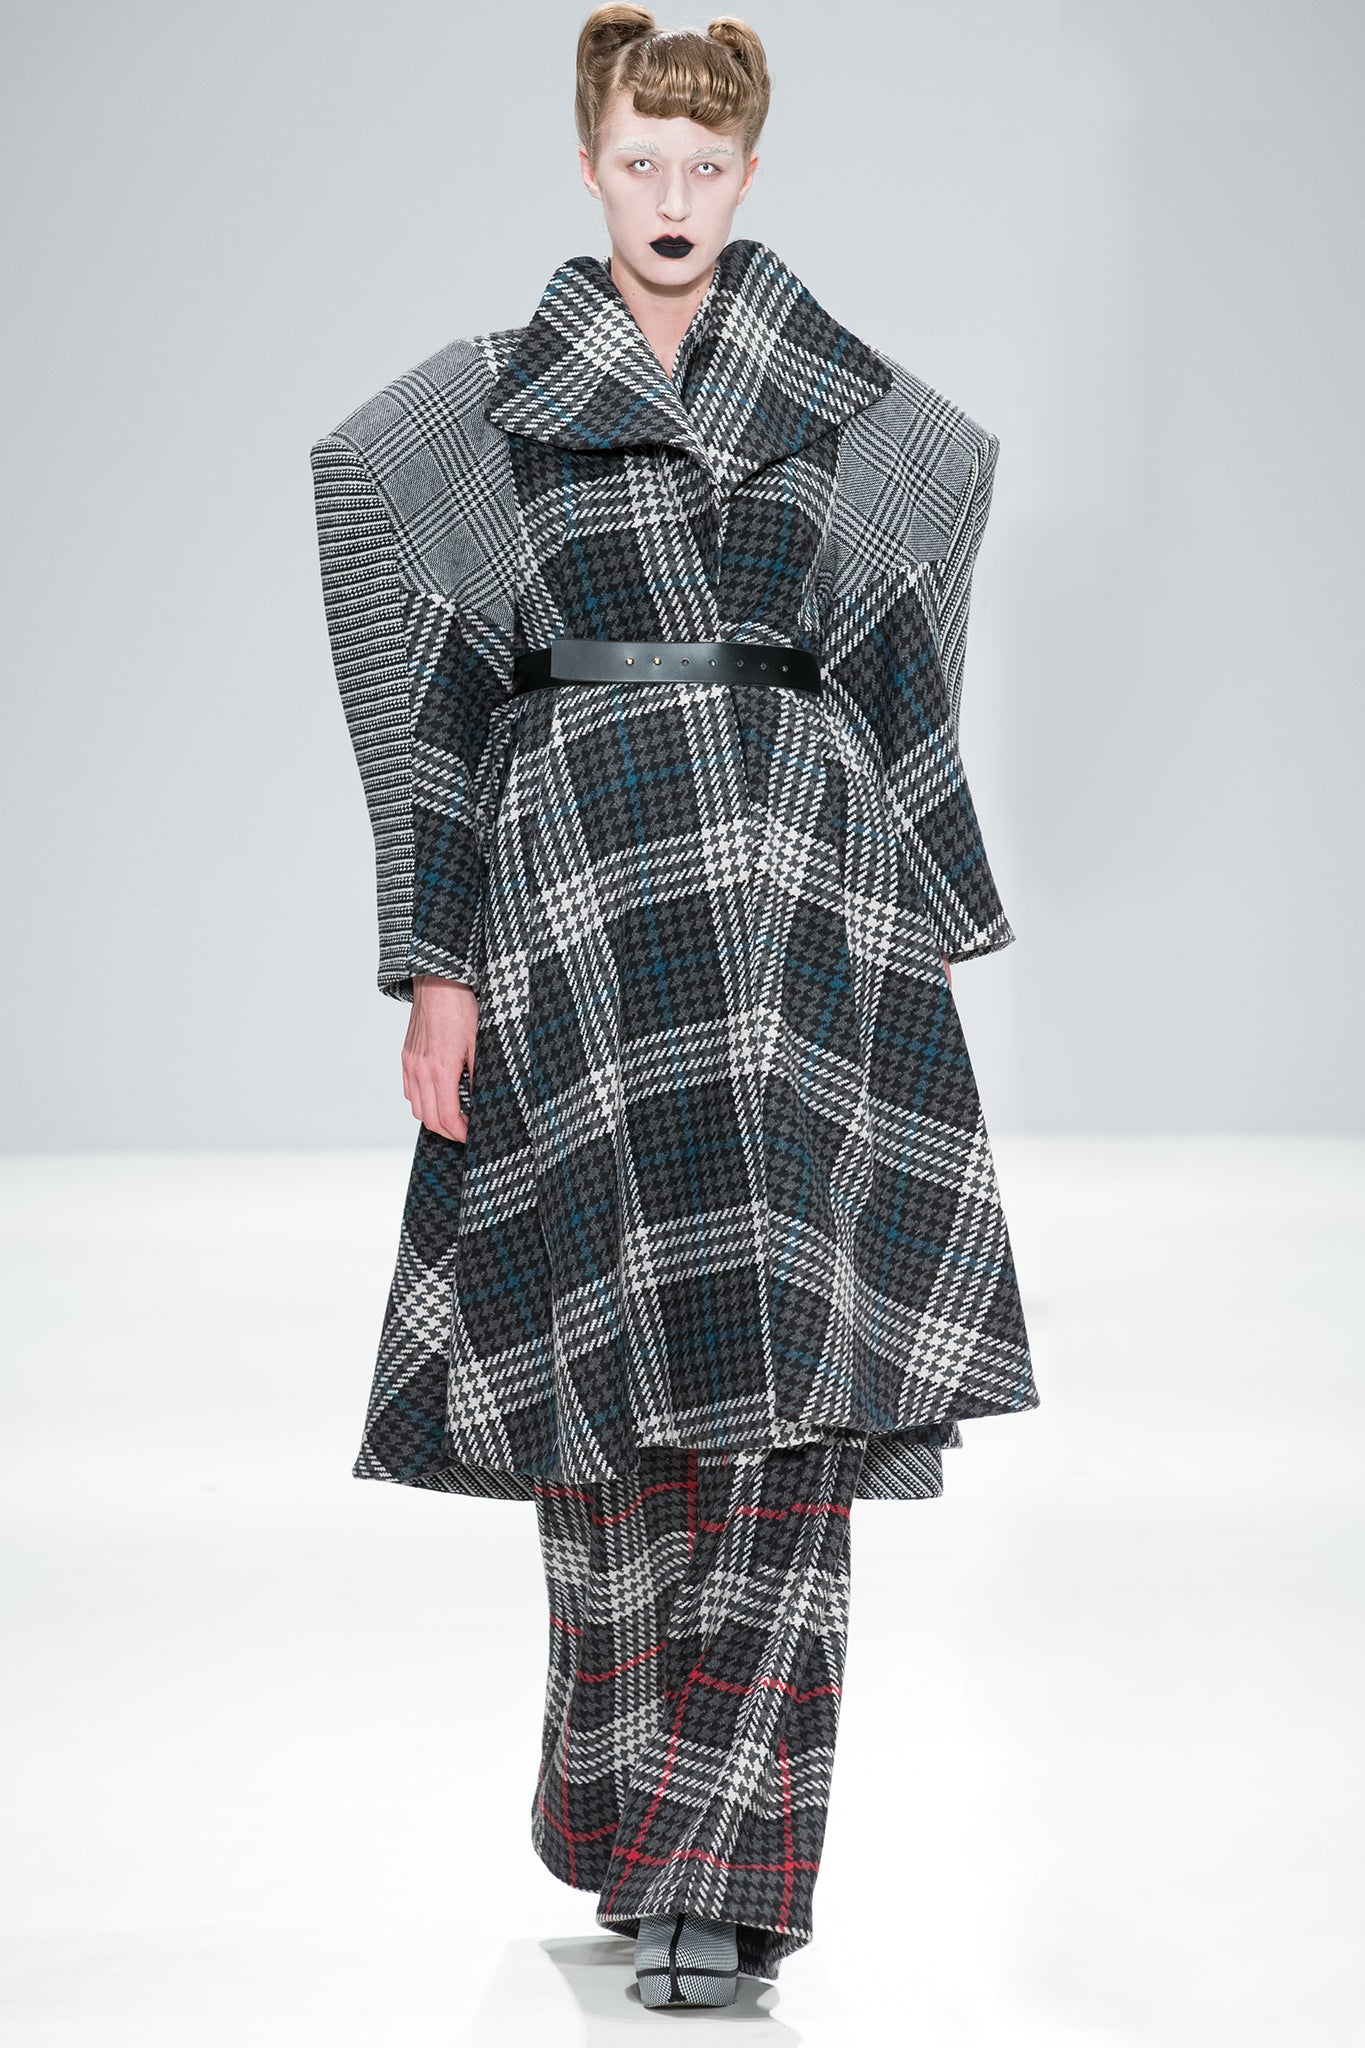 CIMONE's 'Extra' coat created in a mix of check wools. Beautiful belted or unbelted, with an elegant 'floating' collar design. A signature style for AW17-18, first shown on the fashion scout catwalk at London Fashion Week.